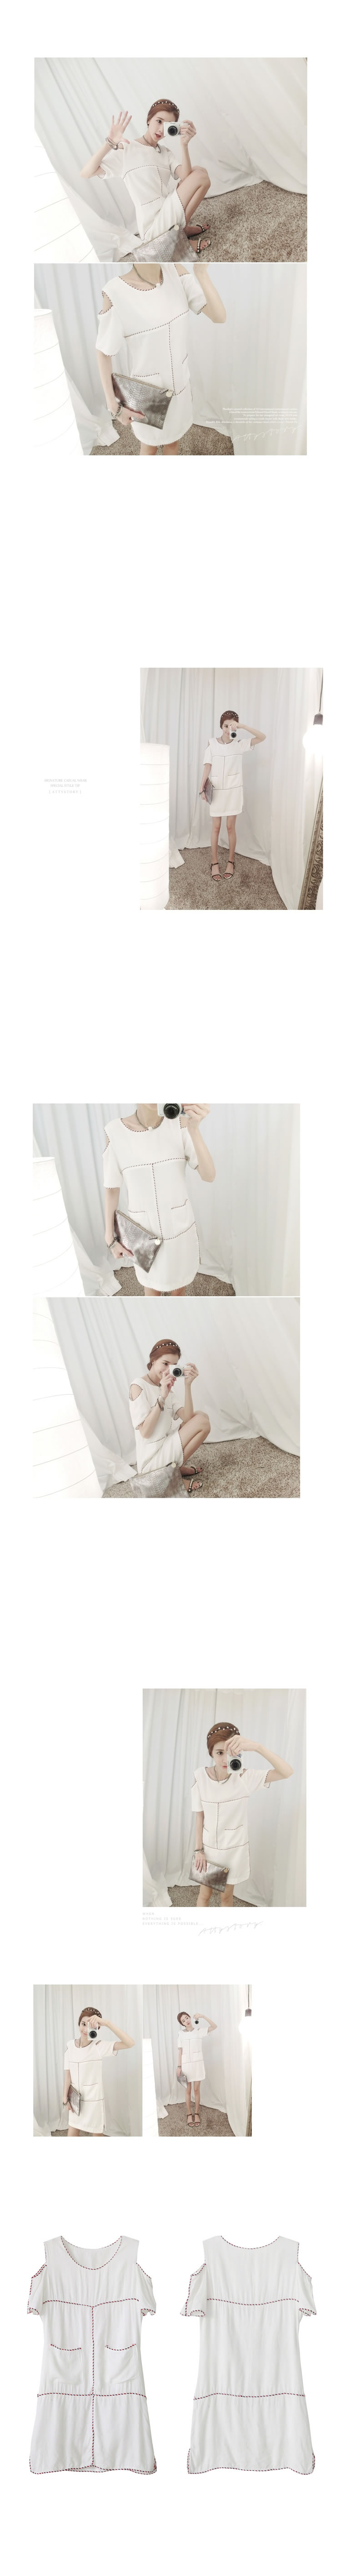 dress-korea-03